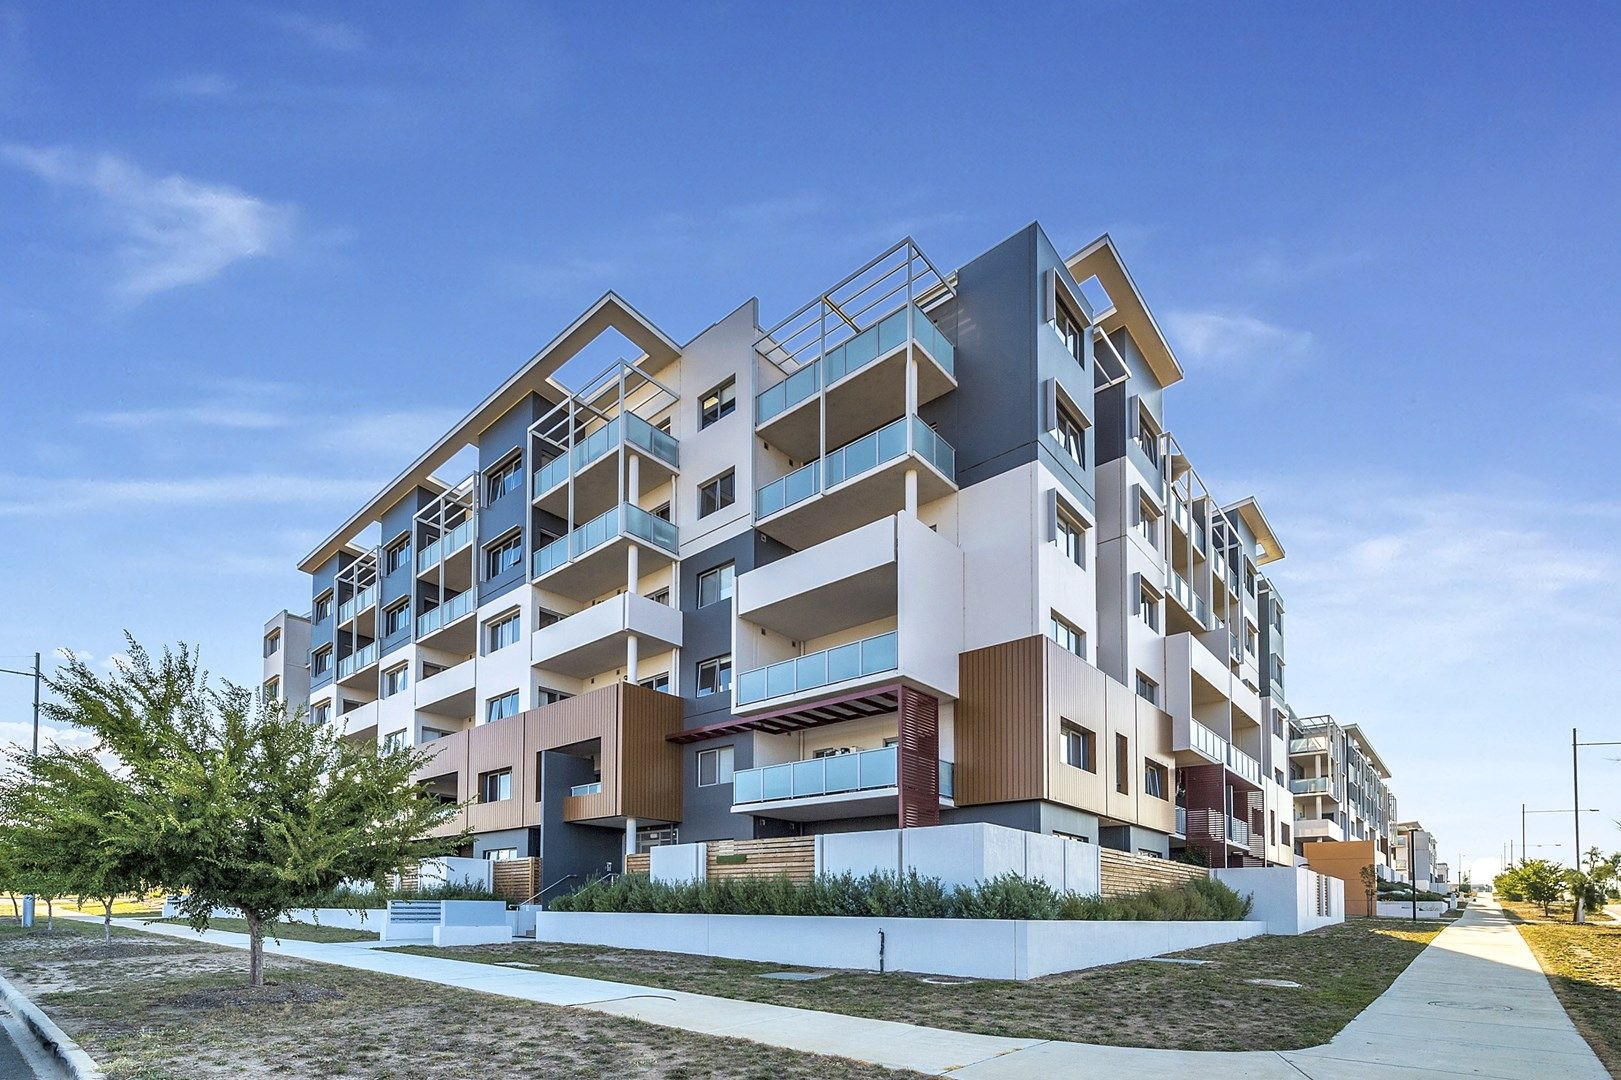 108/2 Peter Cullen Way, Wright ACT 2611, Image 0